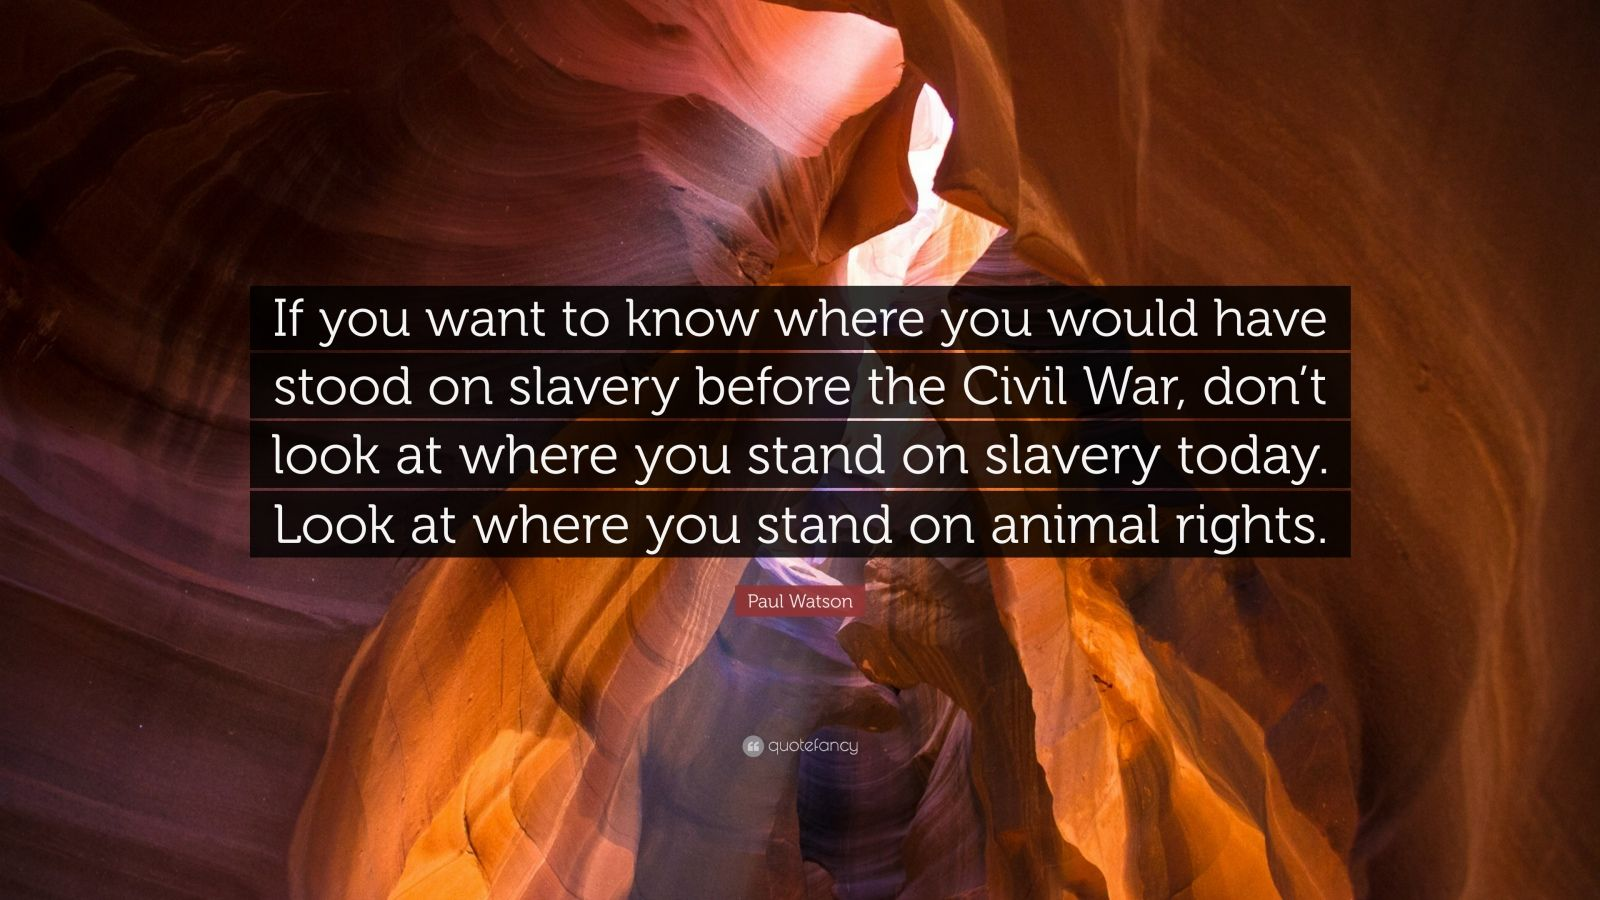 """Paul Watson Quote: """"If you want to know where you would have stood on slavery before the Civil War, don't look at where you stand on slavery today. Look at where you stand on animal rights."""""""